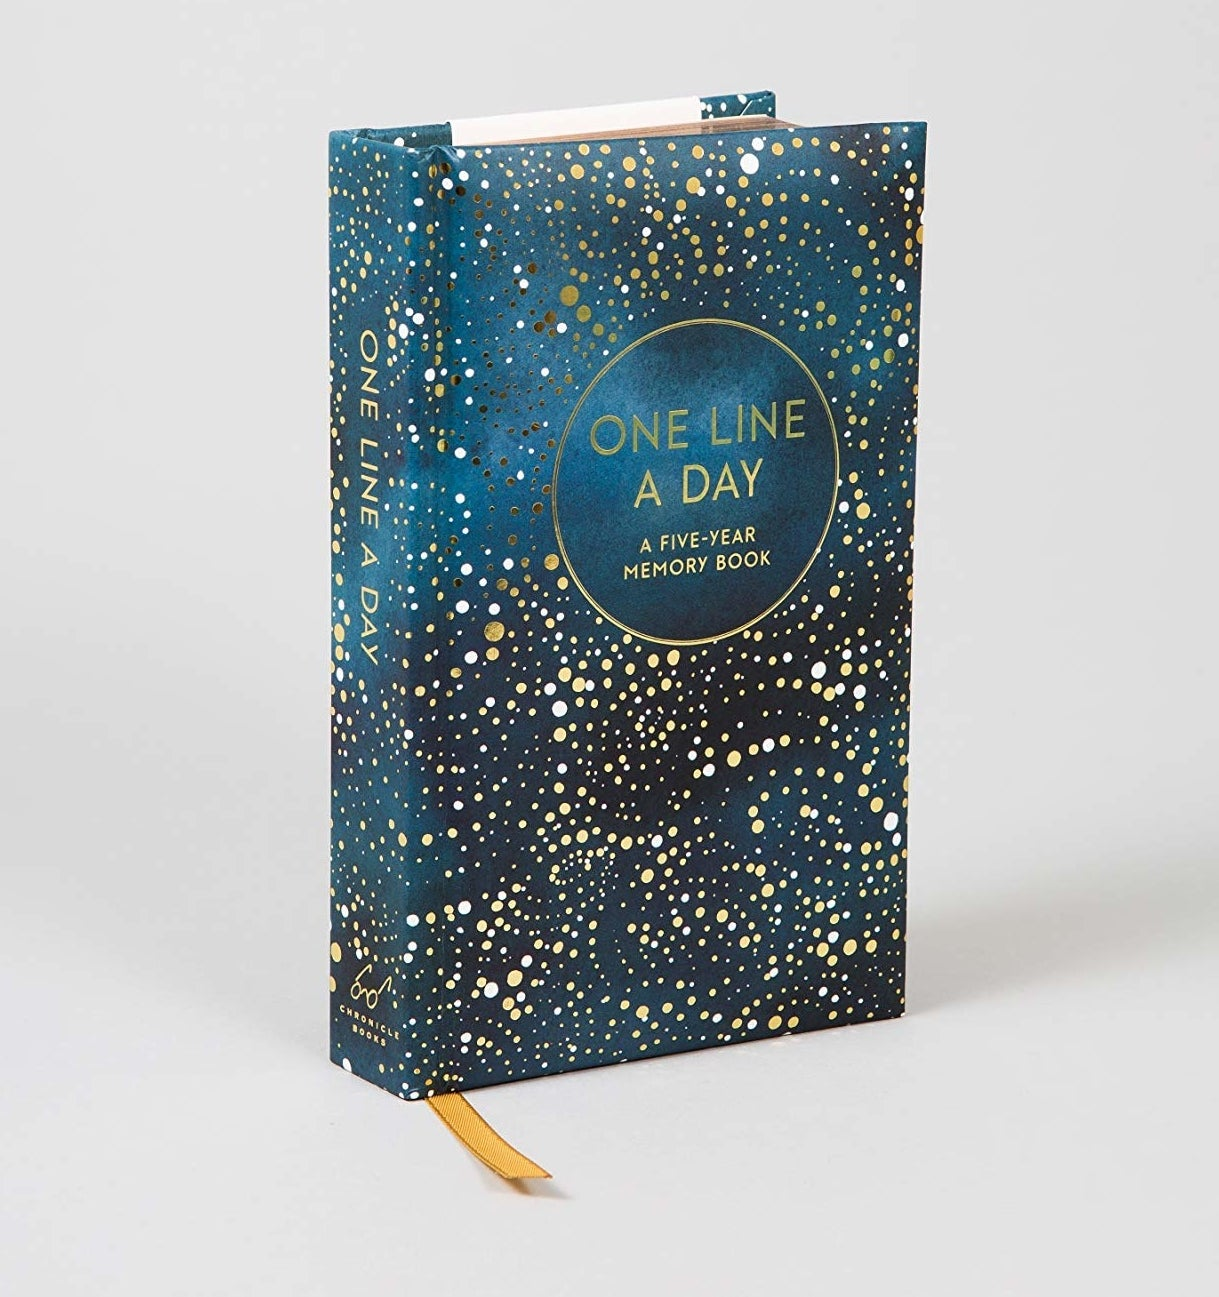 the journal with starry cover design